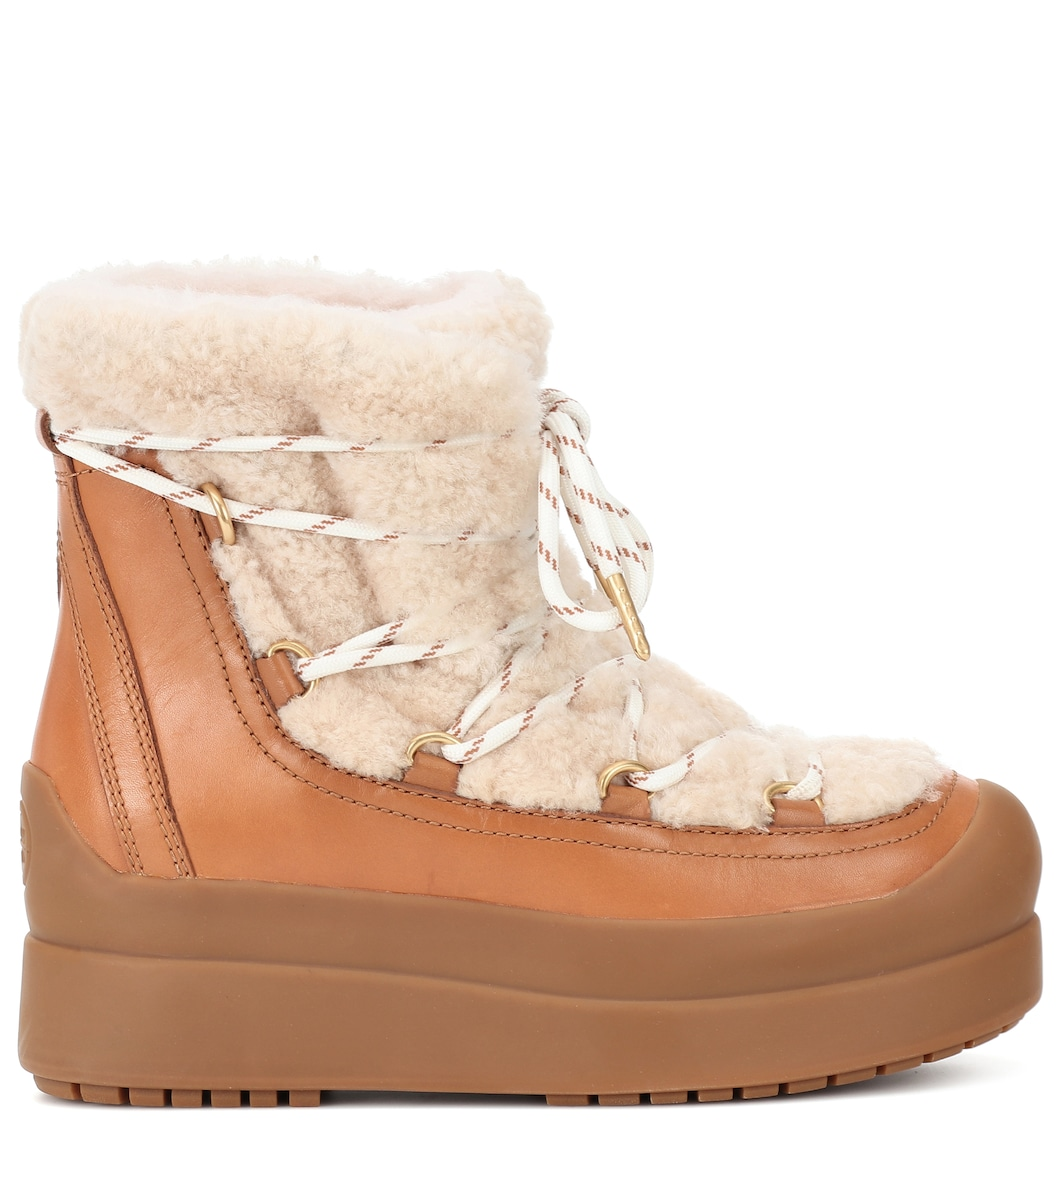 00602475f Tory Burch - Courtney 60mm shearling ankle boots